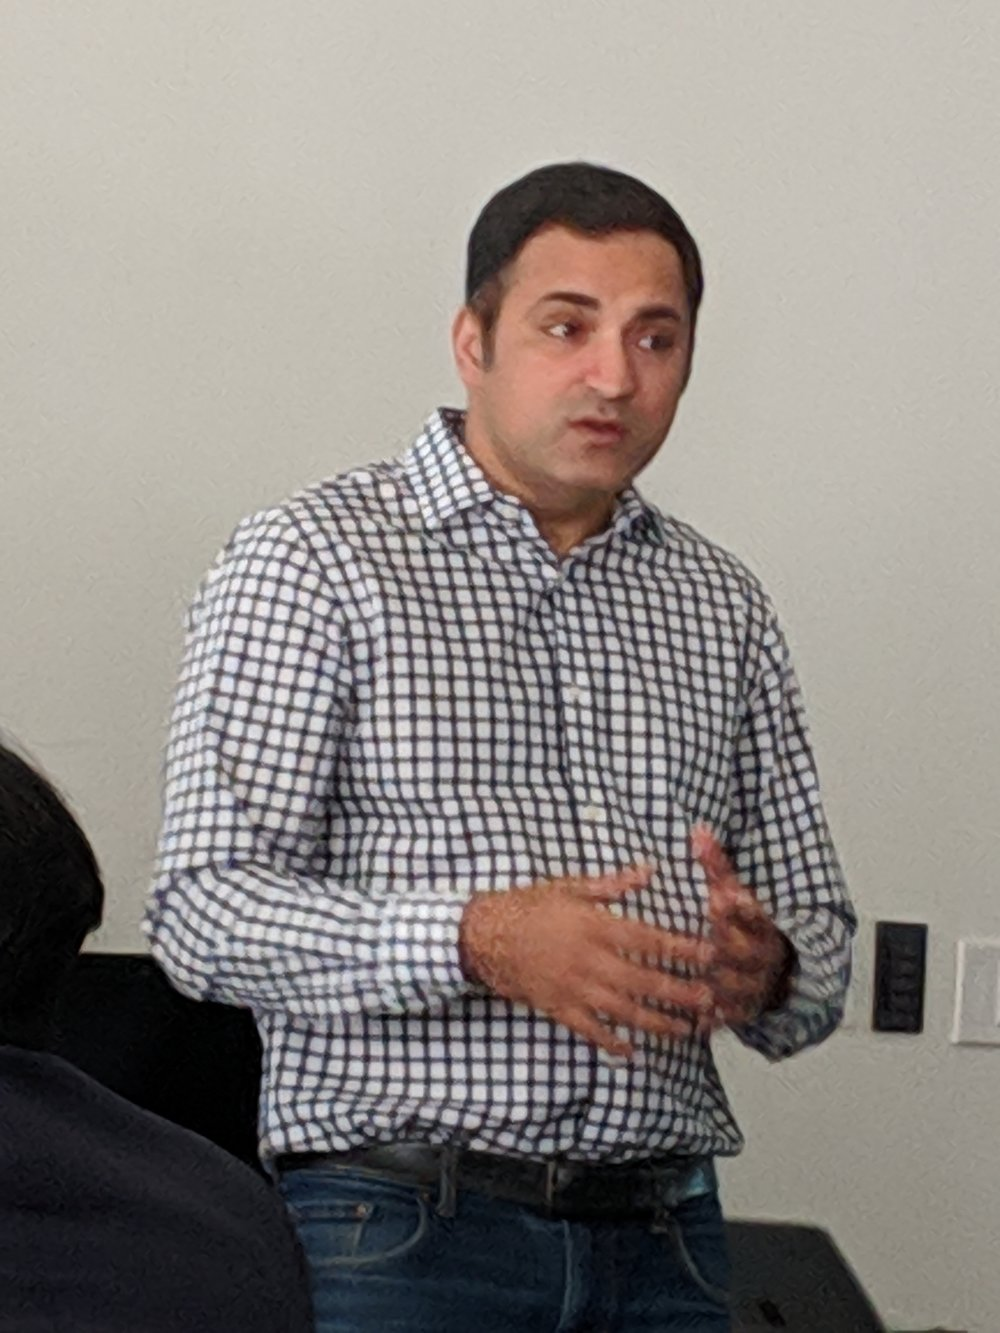 Raja Manzoor from Microsoft highlights the benefits of using a tool like Power BI.